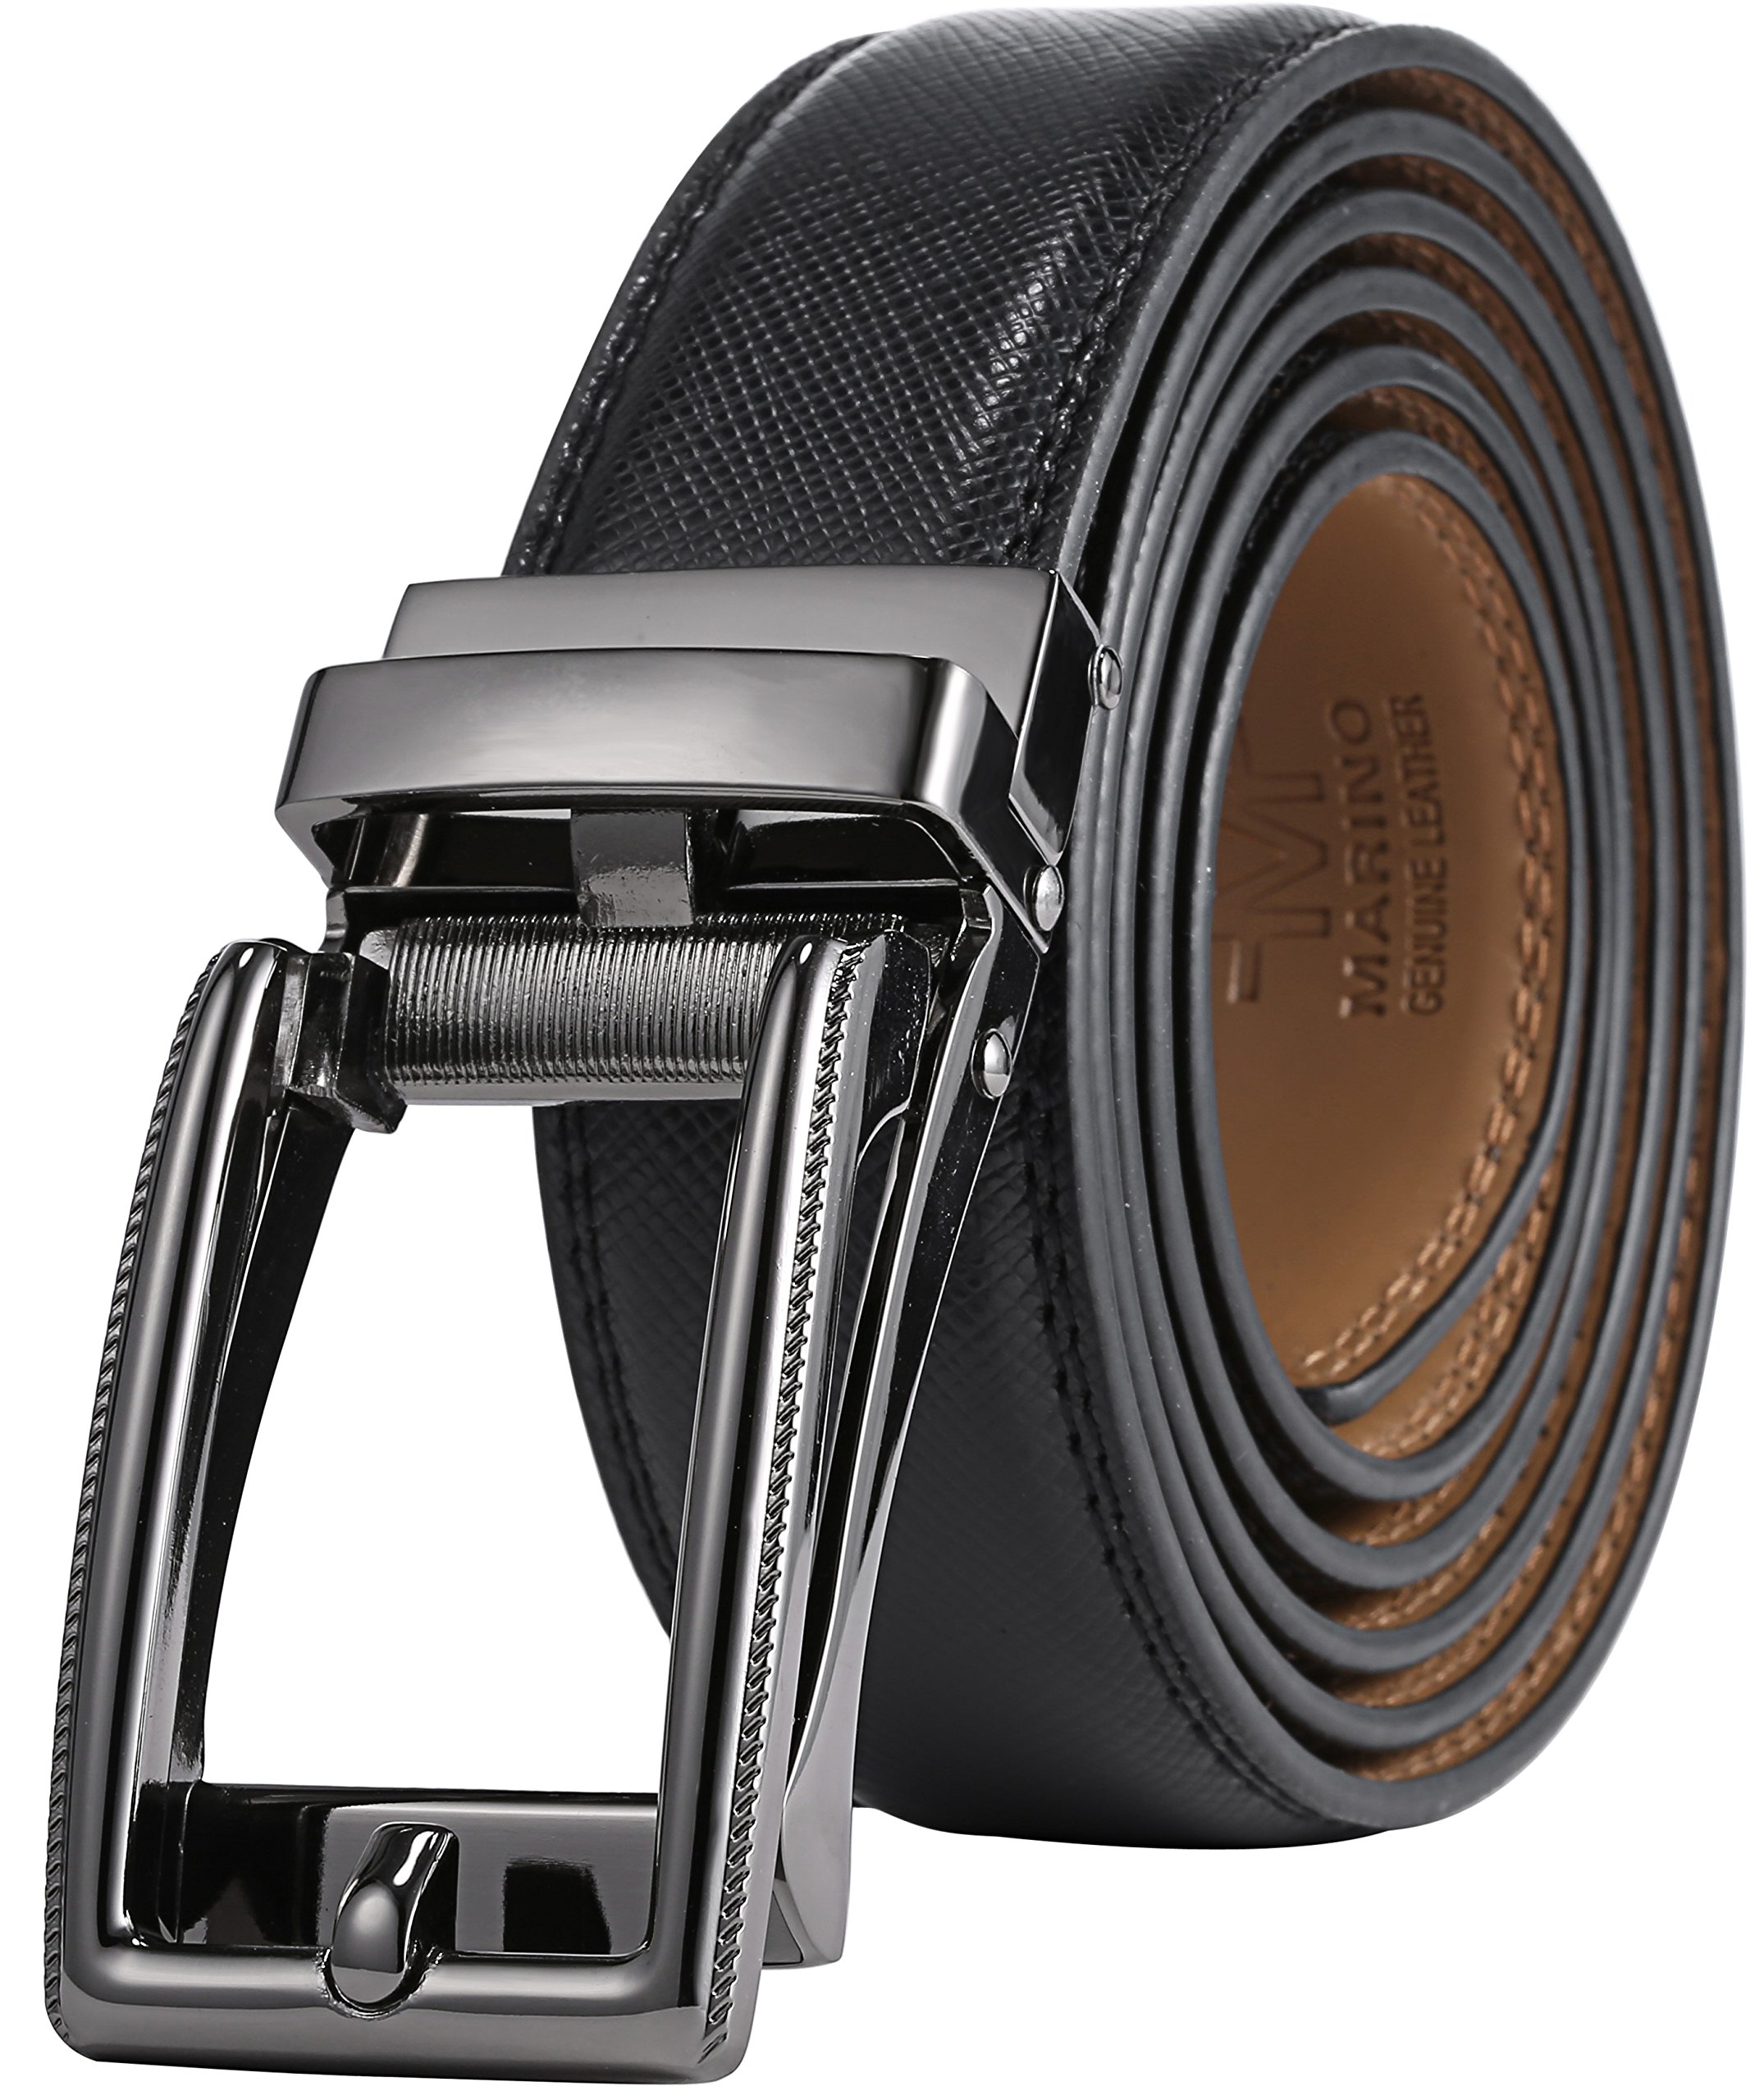 Marino Men's Genuine Leather Ratchet Dress Belt with Open Linxx Buckle, Enclosed in an Elegant Gift Box - Gunblack Silver Square Open Buckle W/Black Leather - Custom XL: Up to 54'' Waist